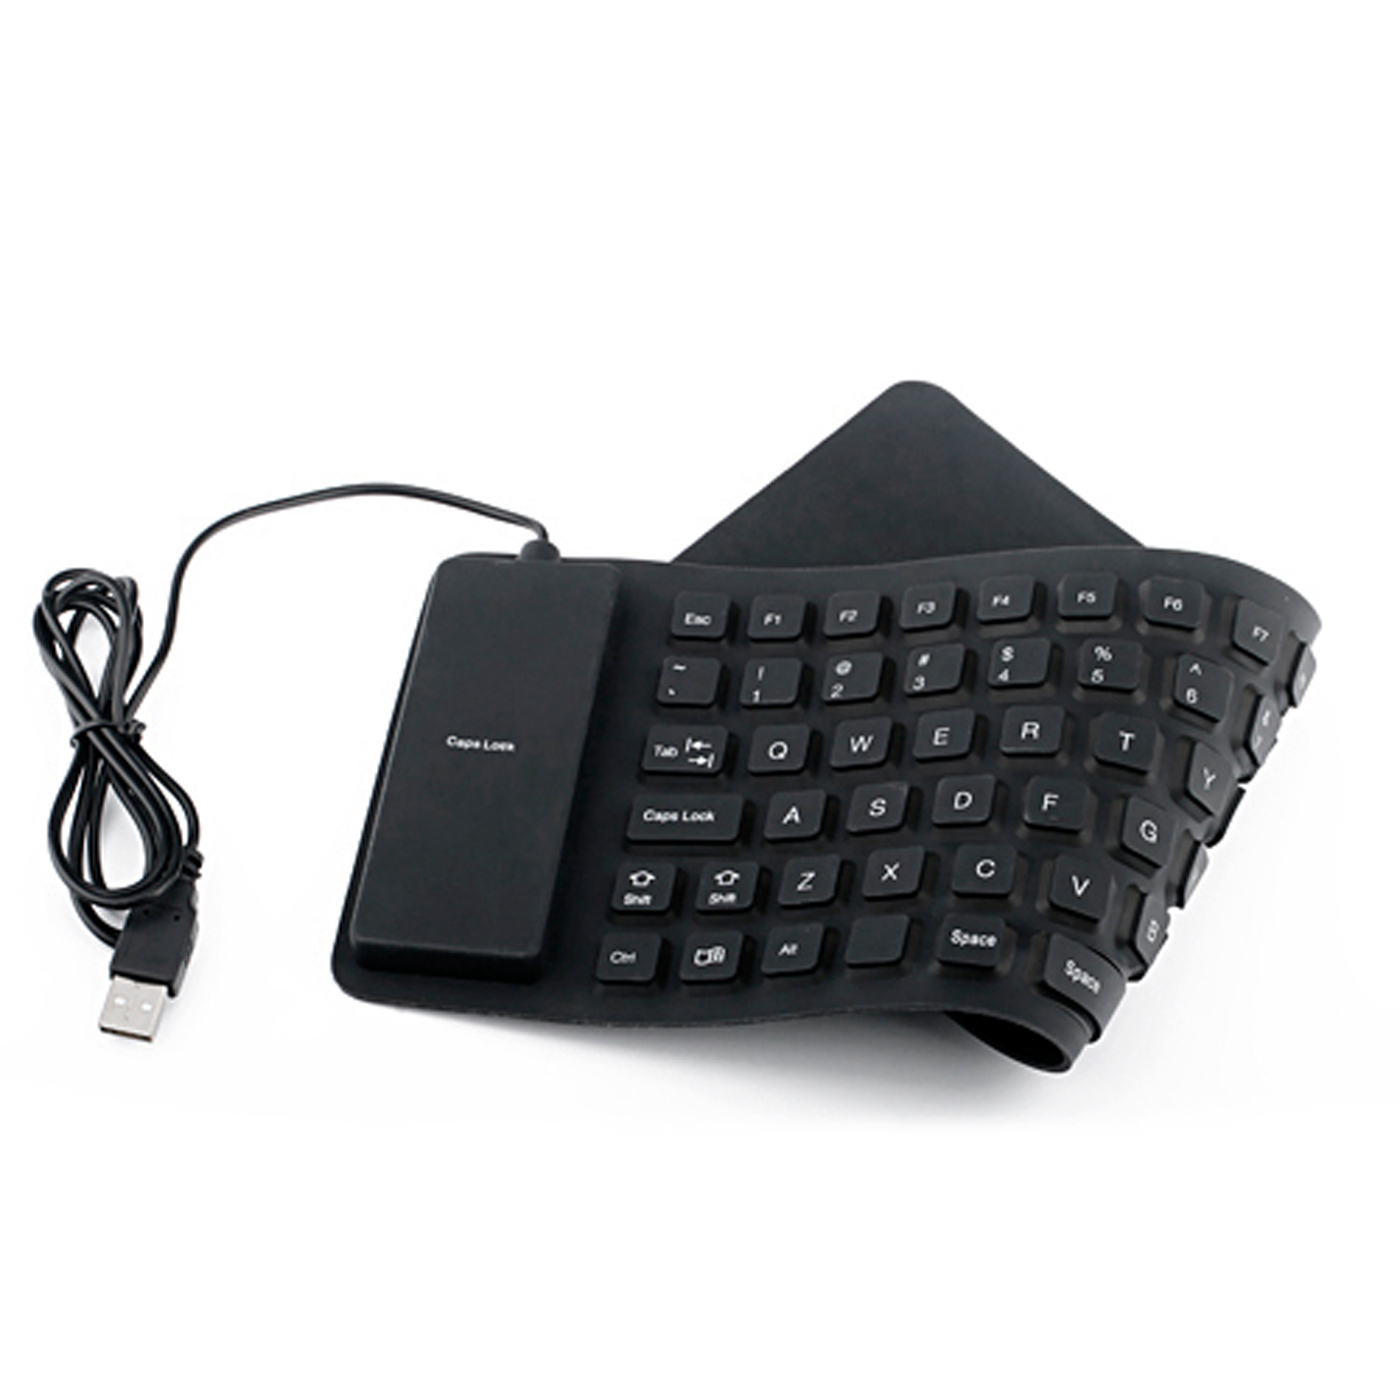 HDE Wired USB Spillproof Roll Up Portable Folding Pocket Silent Typing Silicone Keyboard